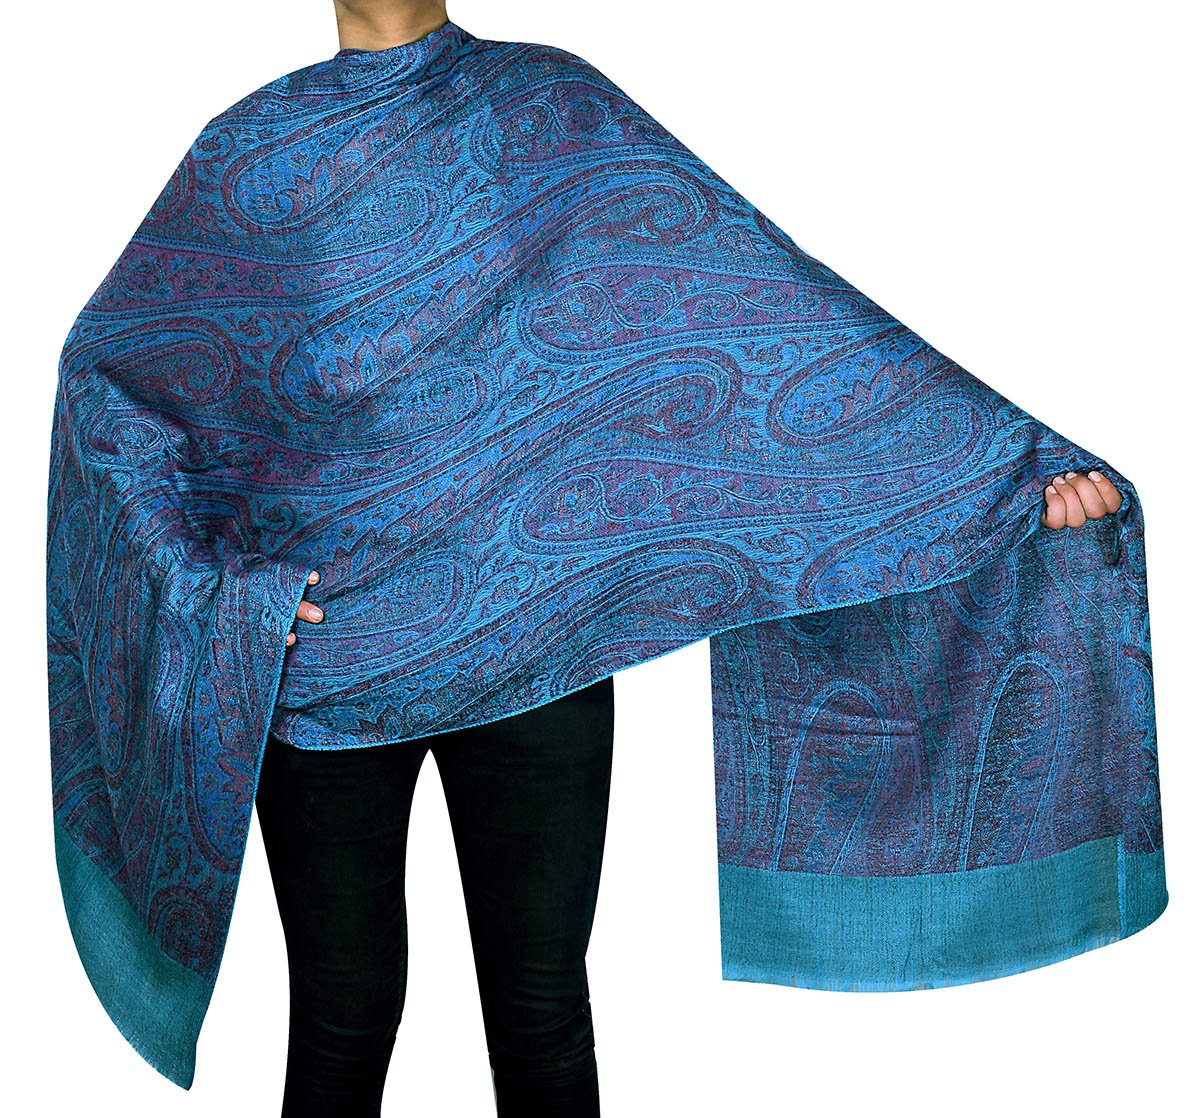 Women's Paisley Wool Shawl Wrap Gift India Clothing (80 x 40 inches) Maple Clothing shwl441816a